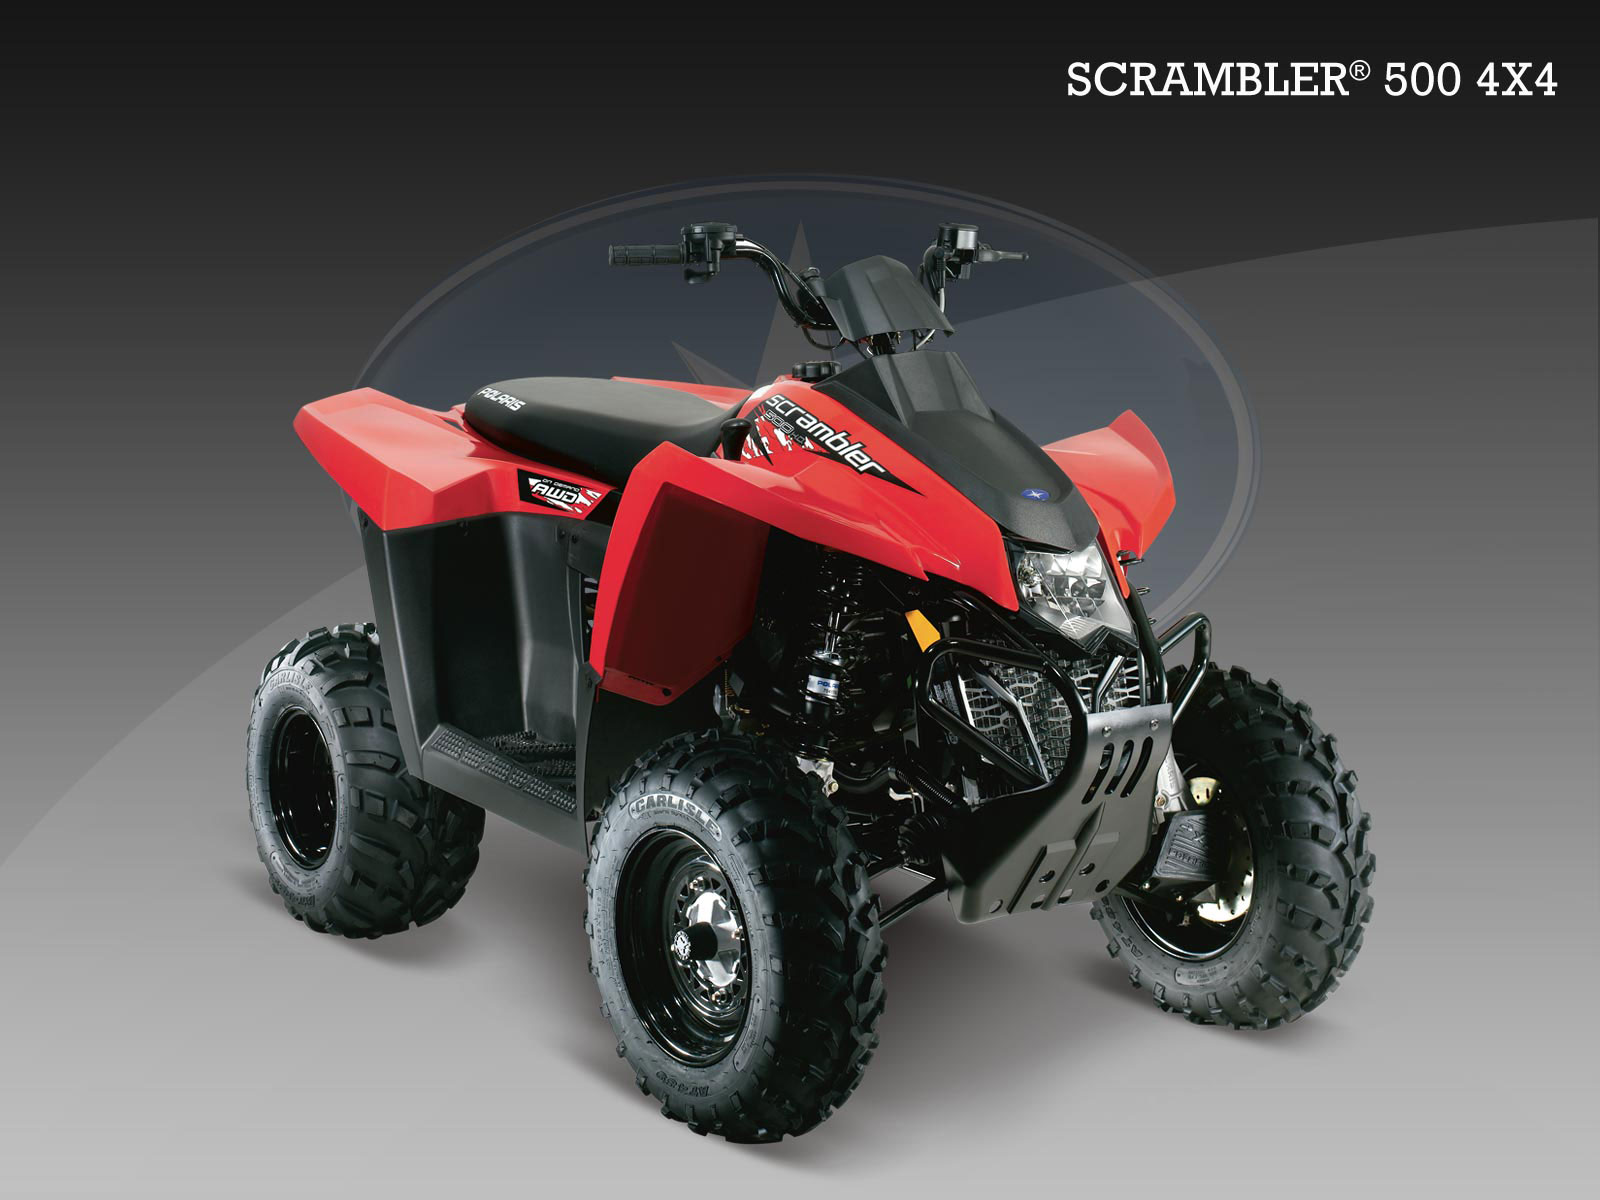 Polaris Scrambler 500 2008 images #121295